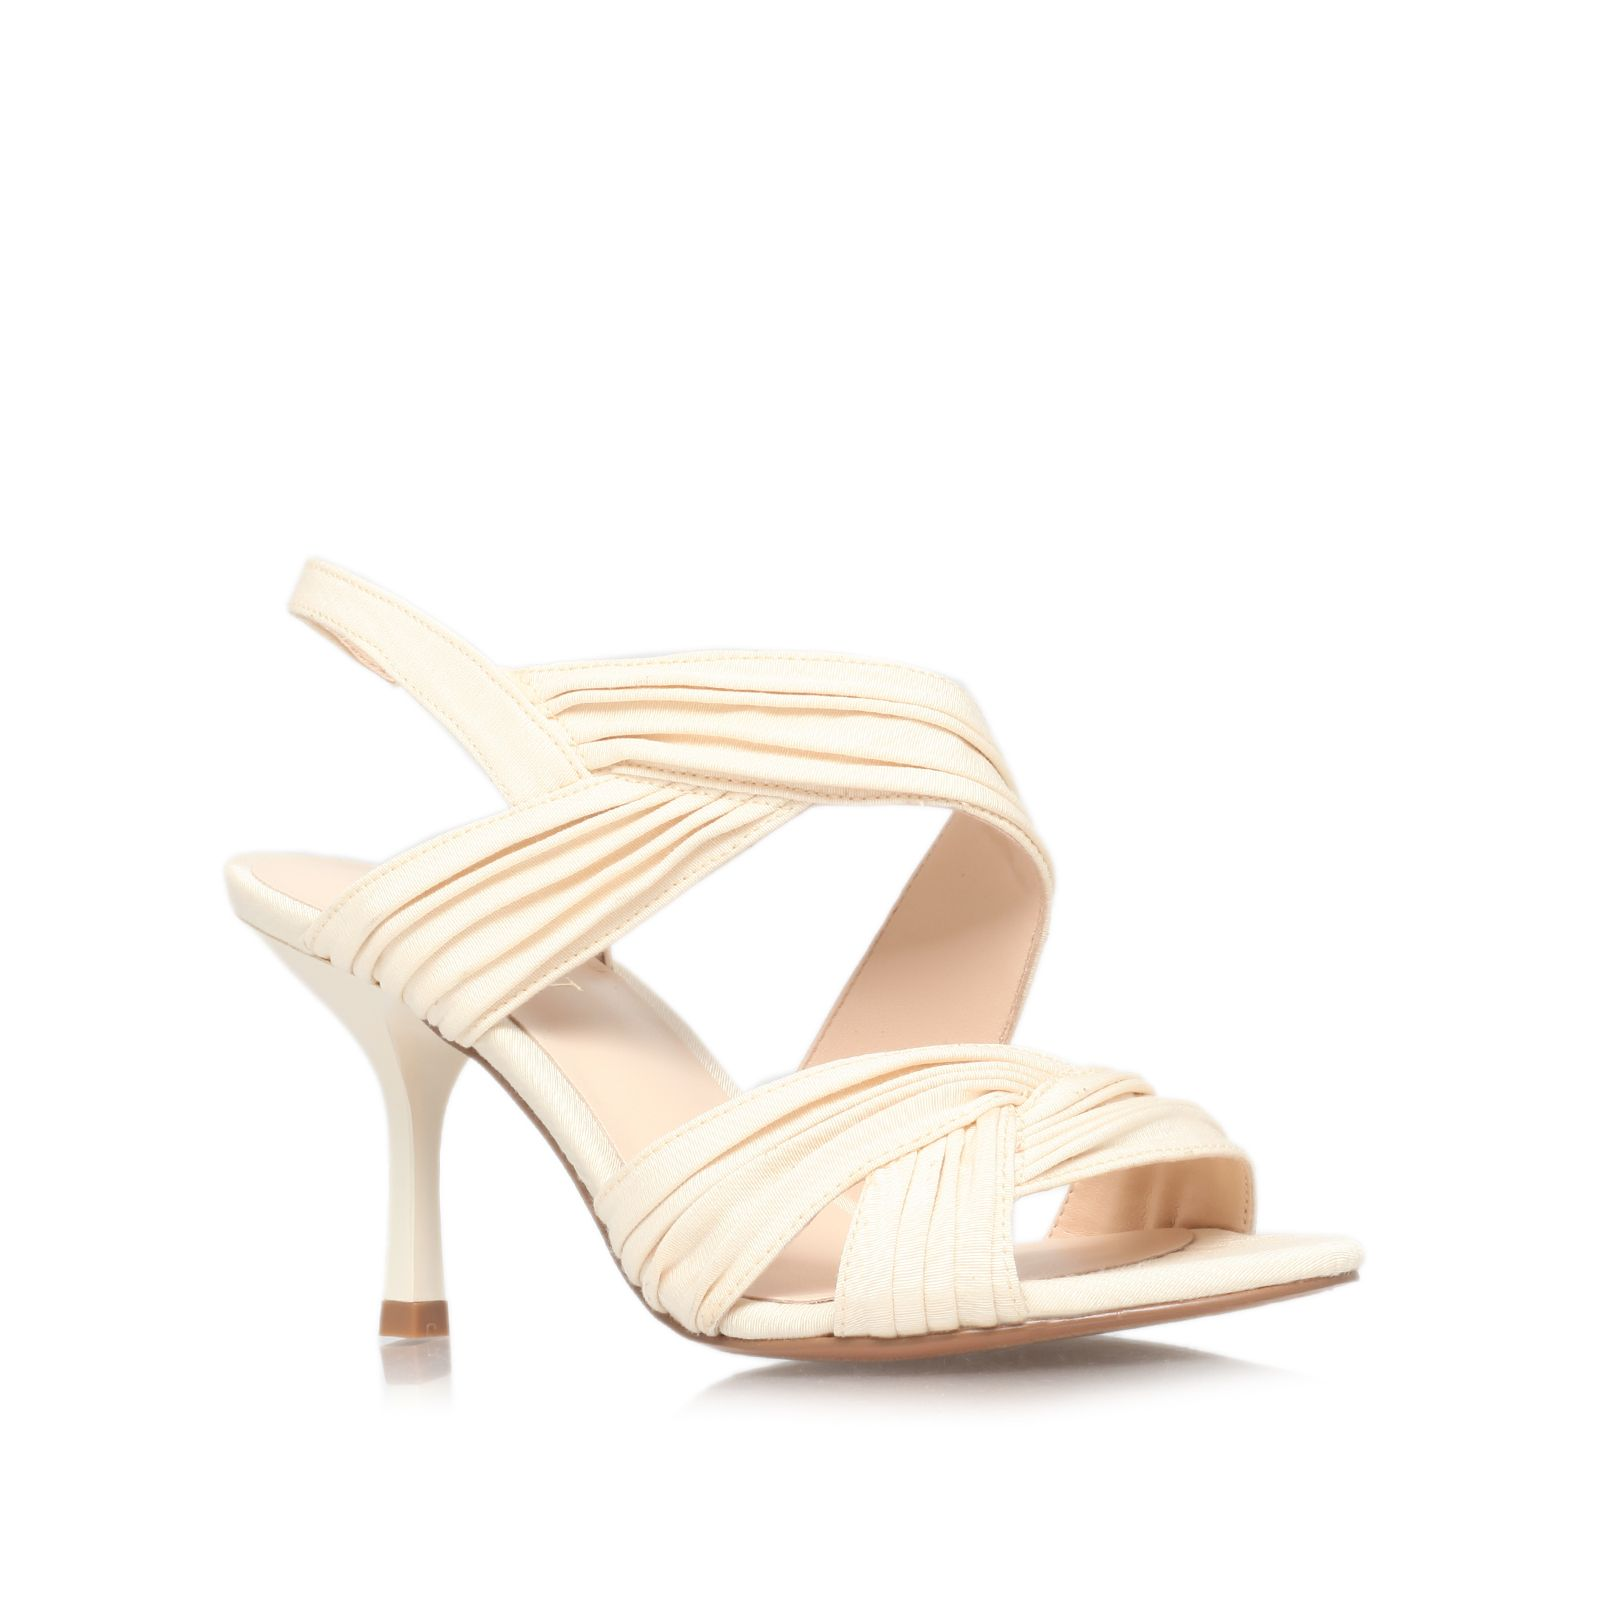 Beaulah22 low heeled court shoes